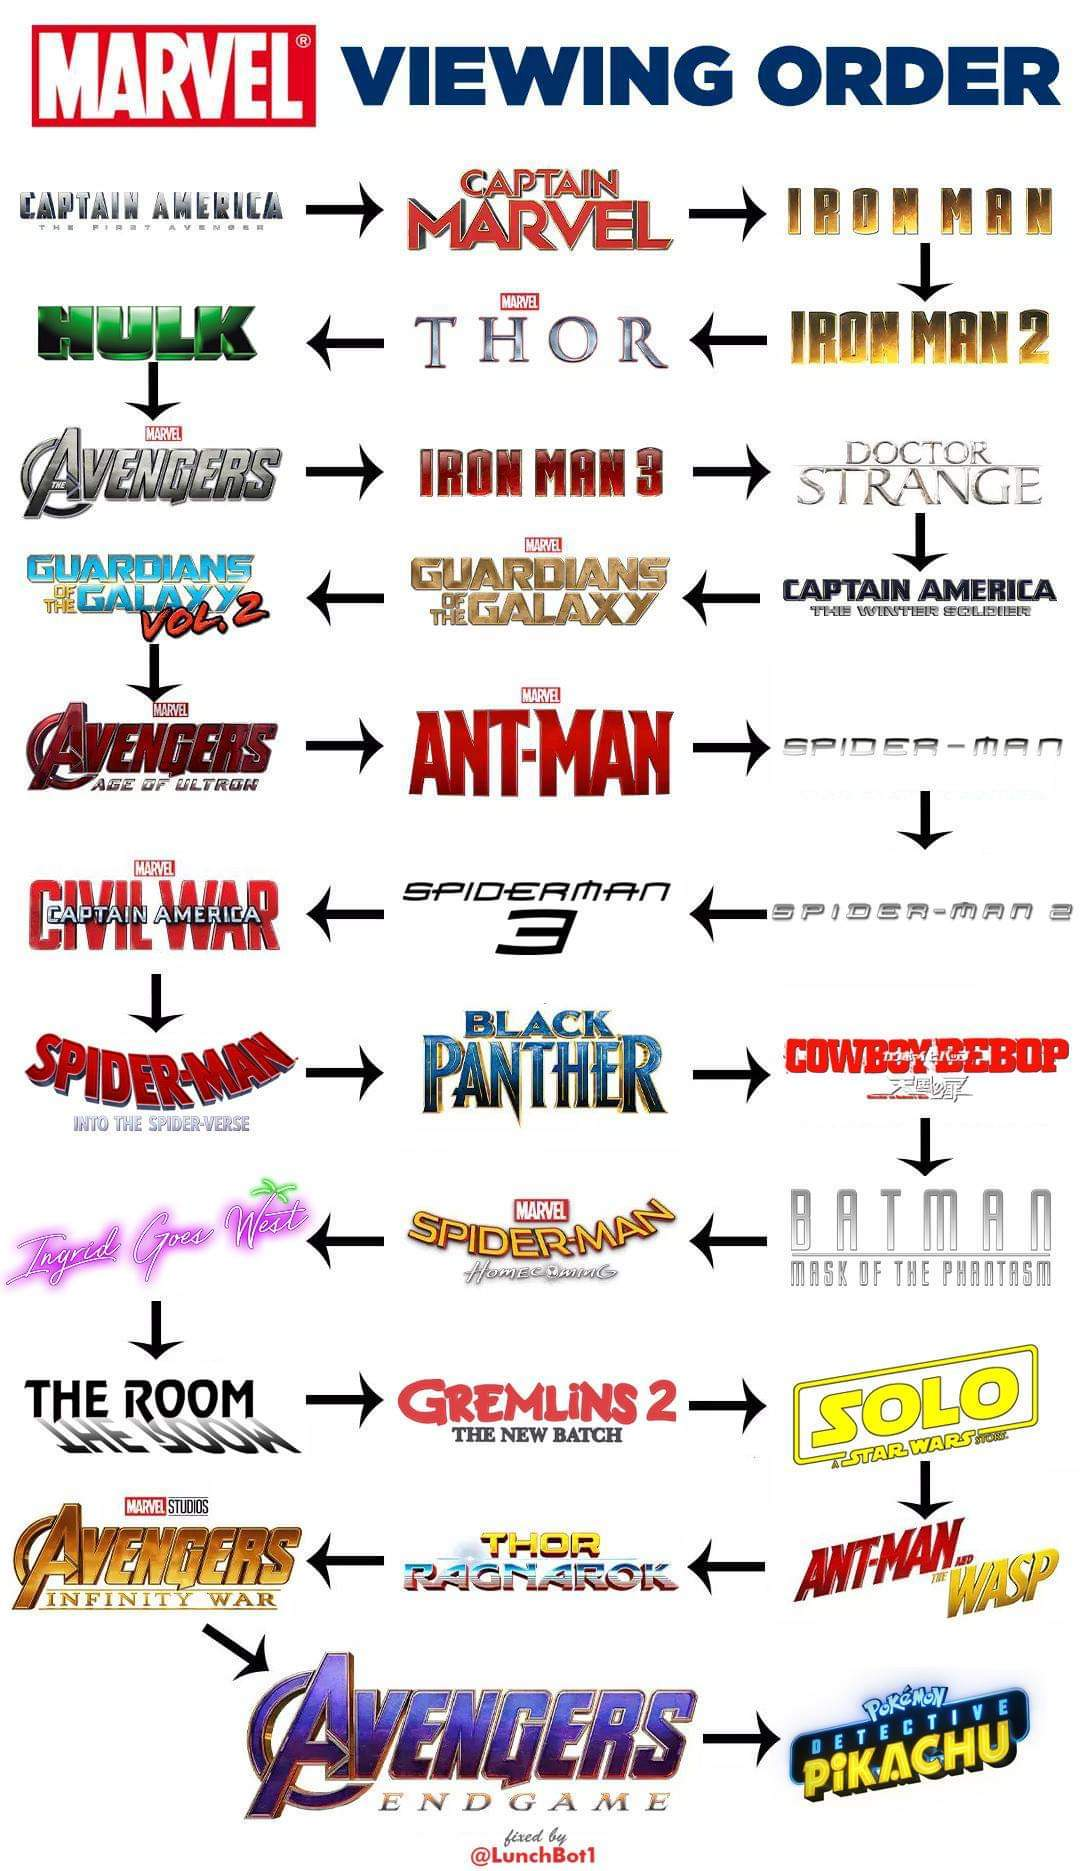 I know what you're thinking, why would Hulk be on this list - meme